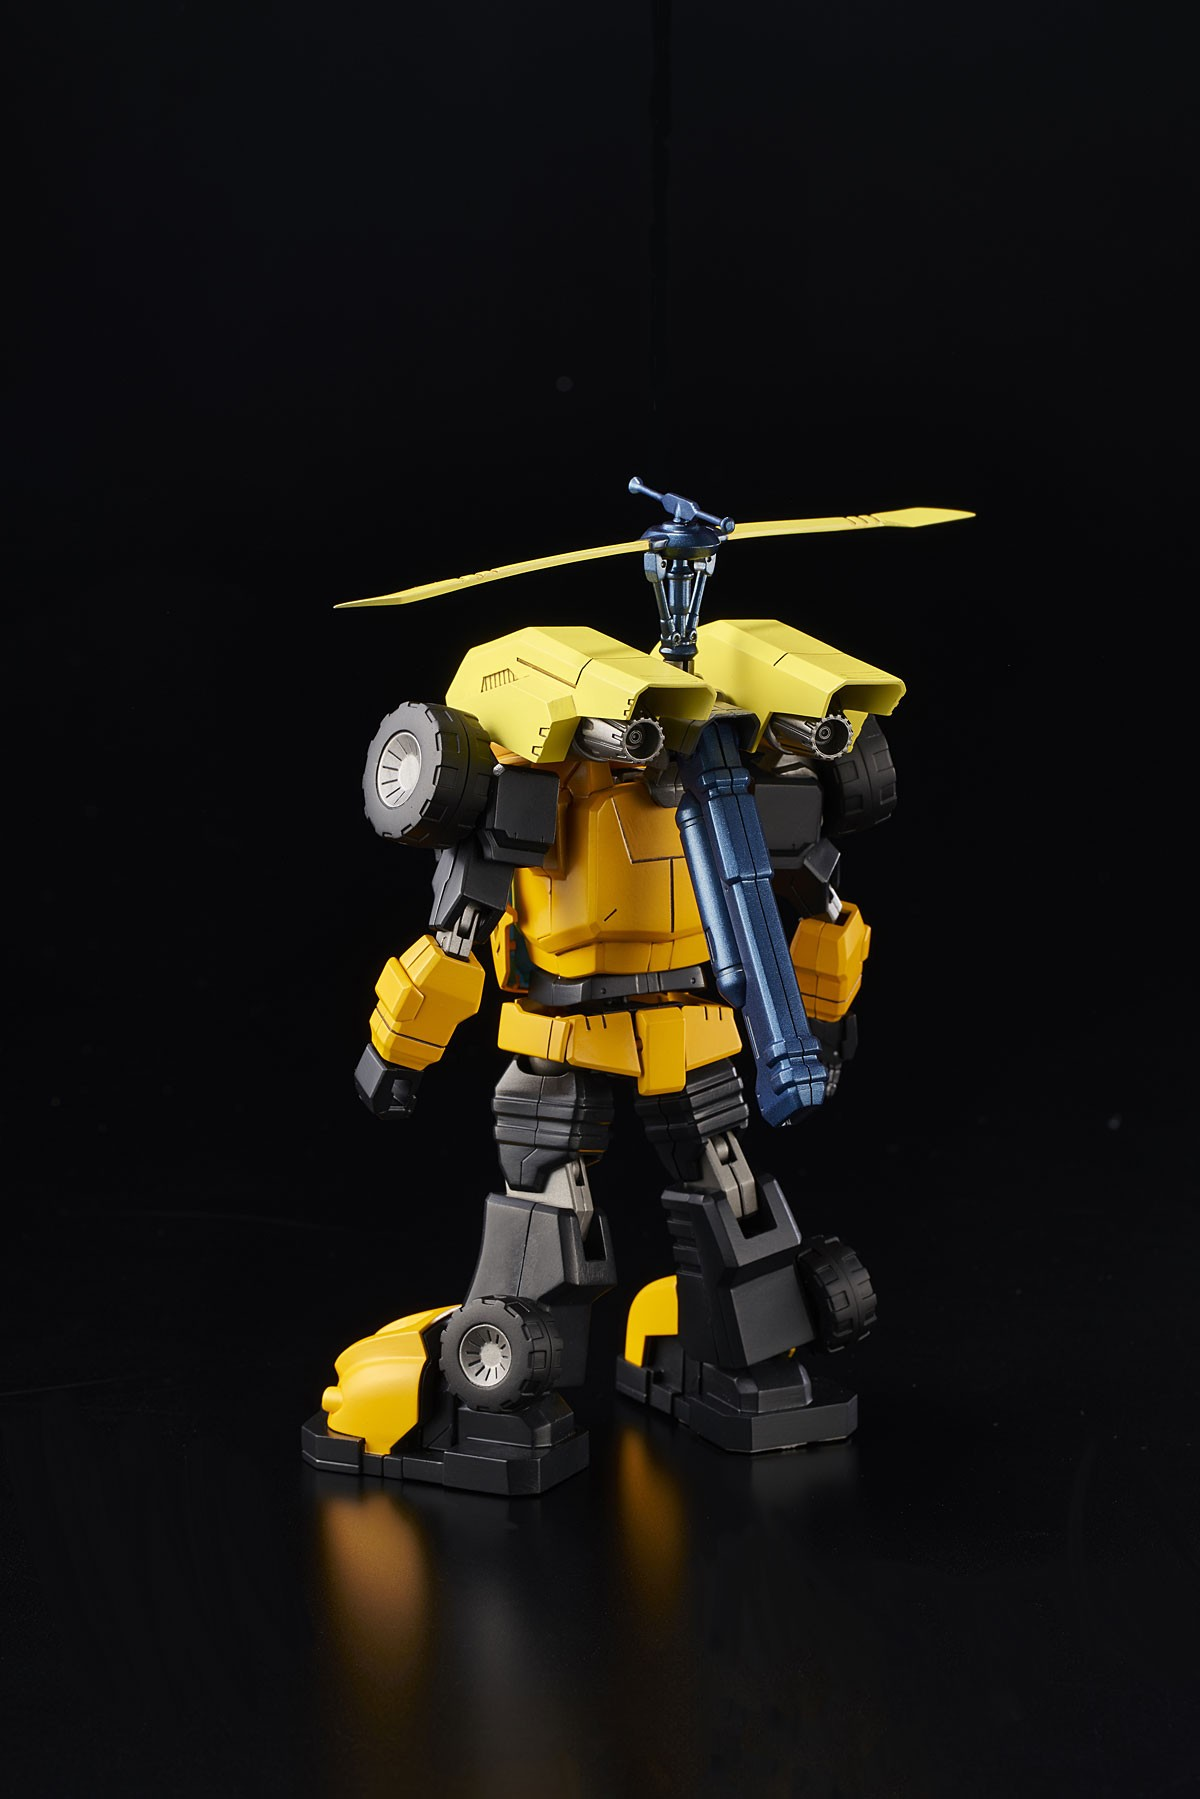 Transformers News: Pre-Orders and Gallery For Bluefin Transformers Star Saber and Bumblebee Collectibles By Flame Toys